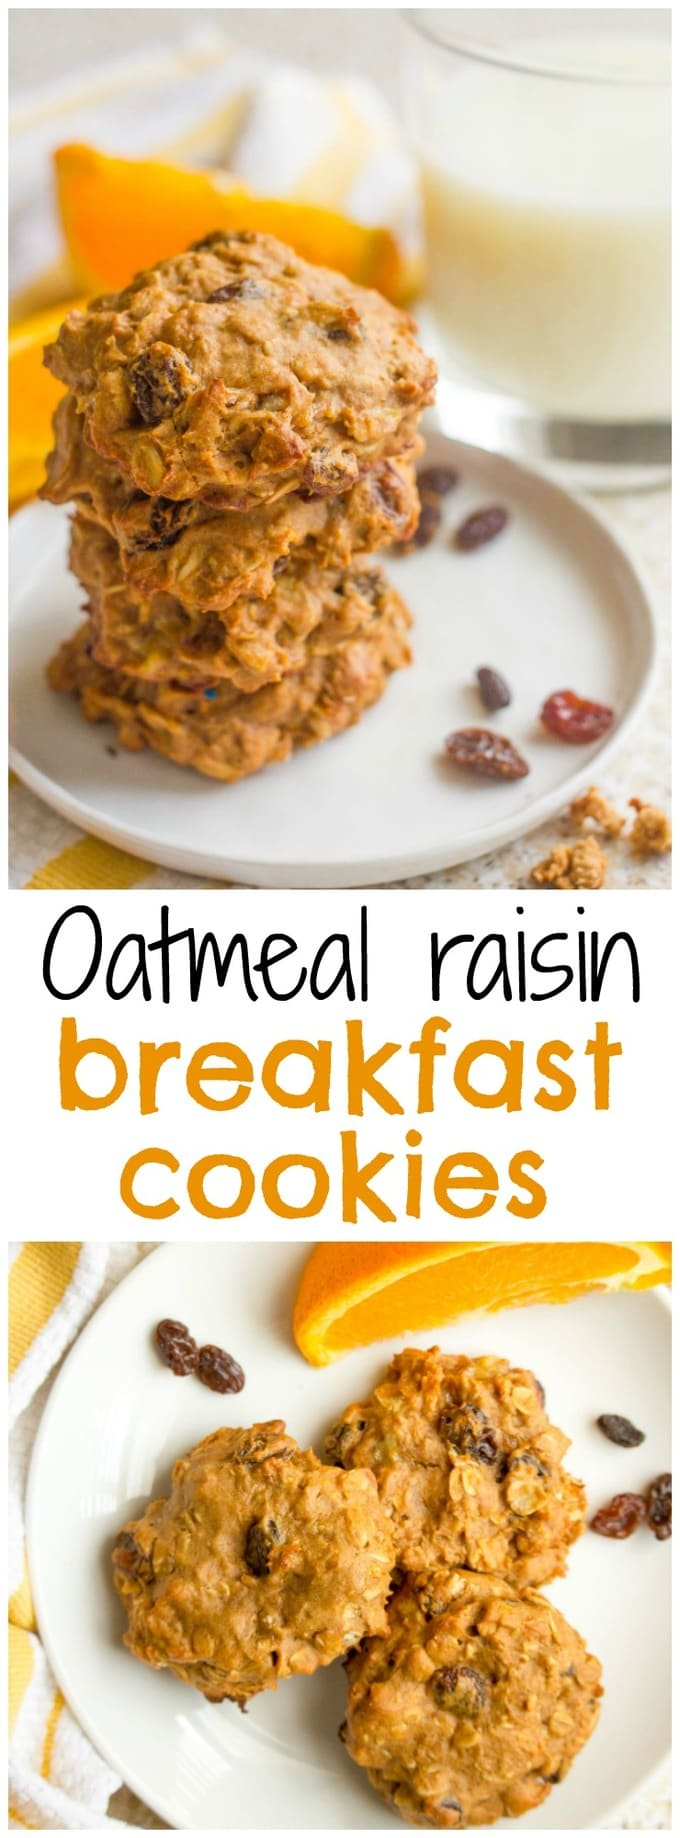 Wholesome oatmeal raisin breakfast cookies that are 100% whole grain and naturally sweetened, perfect for a fun and healthy breakfast. They freeze great too!